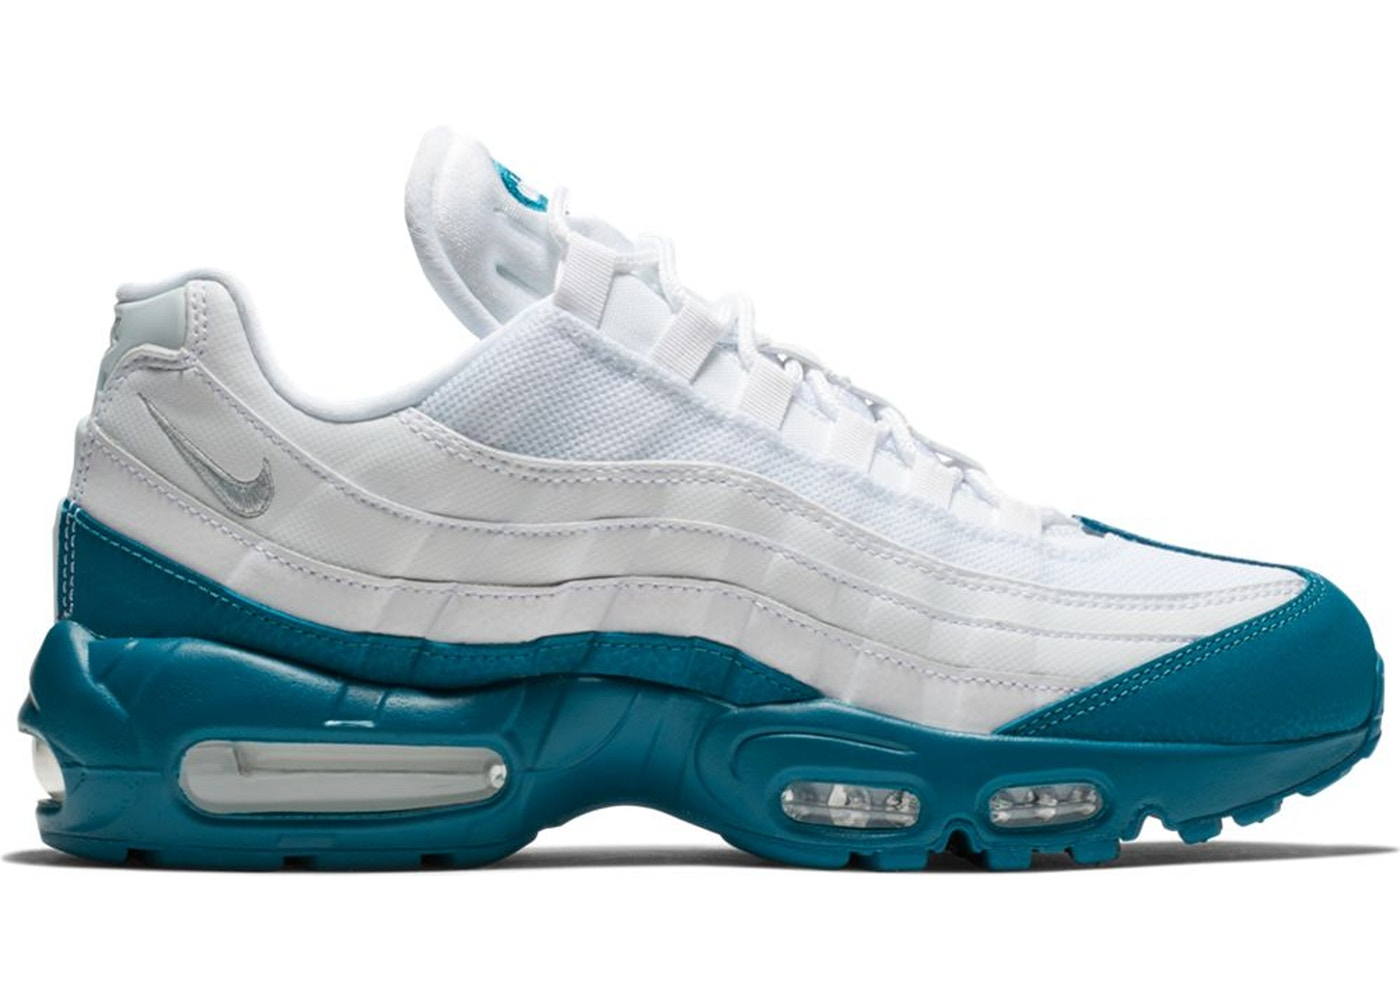 0b43aac718ad48 Buy Nike Air Max 95 Shoes   Deadstock Sneakers